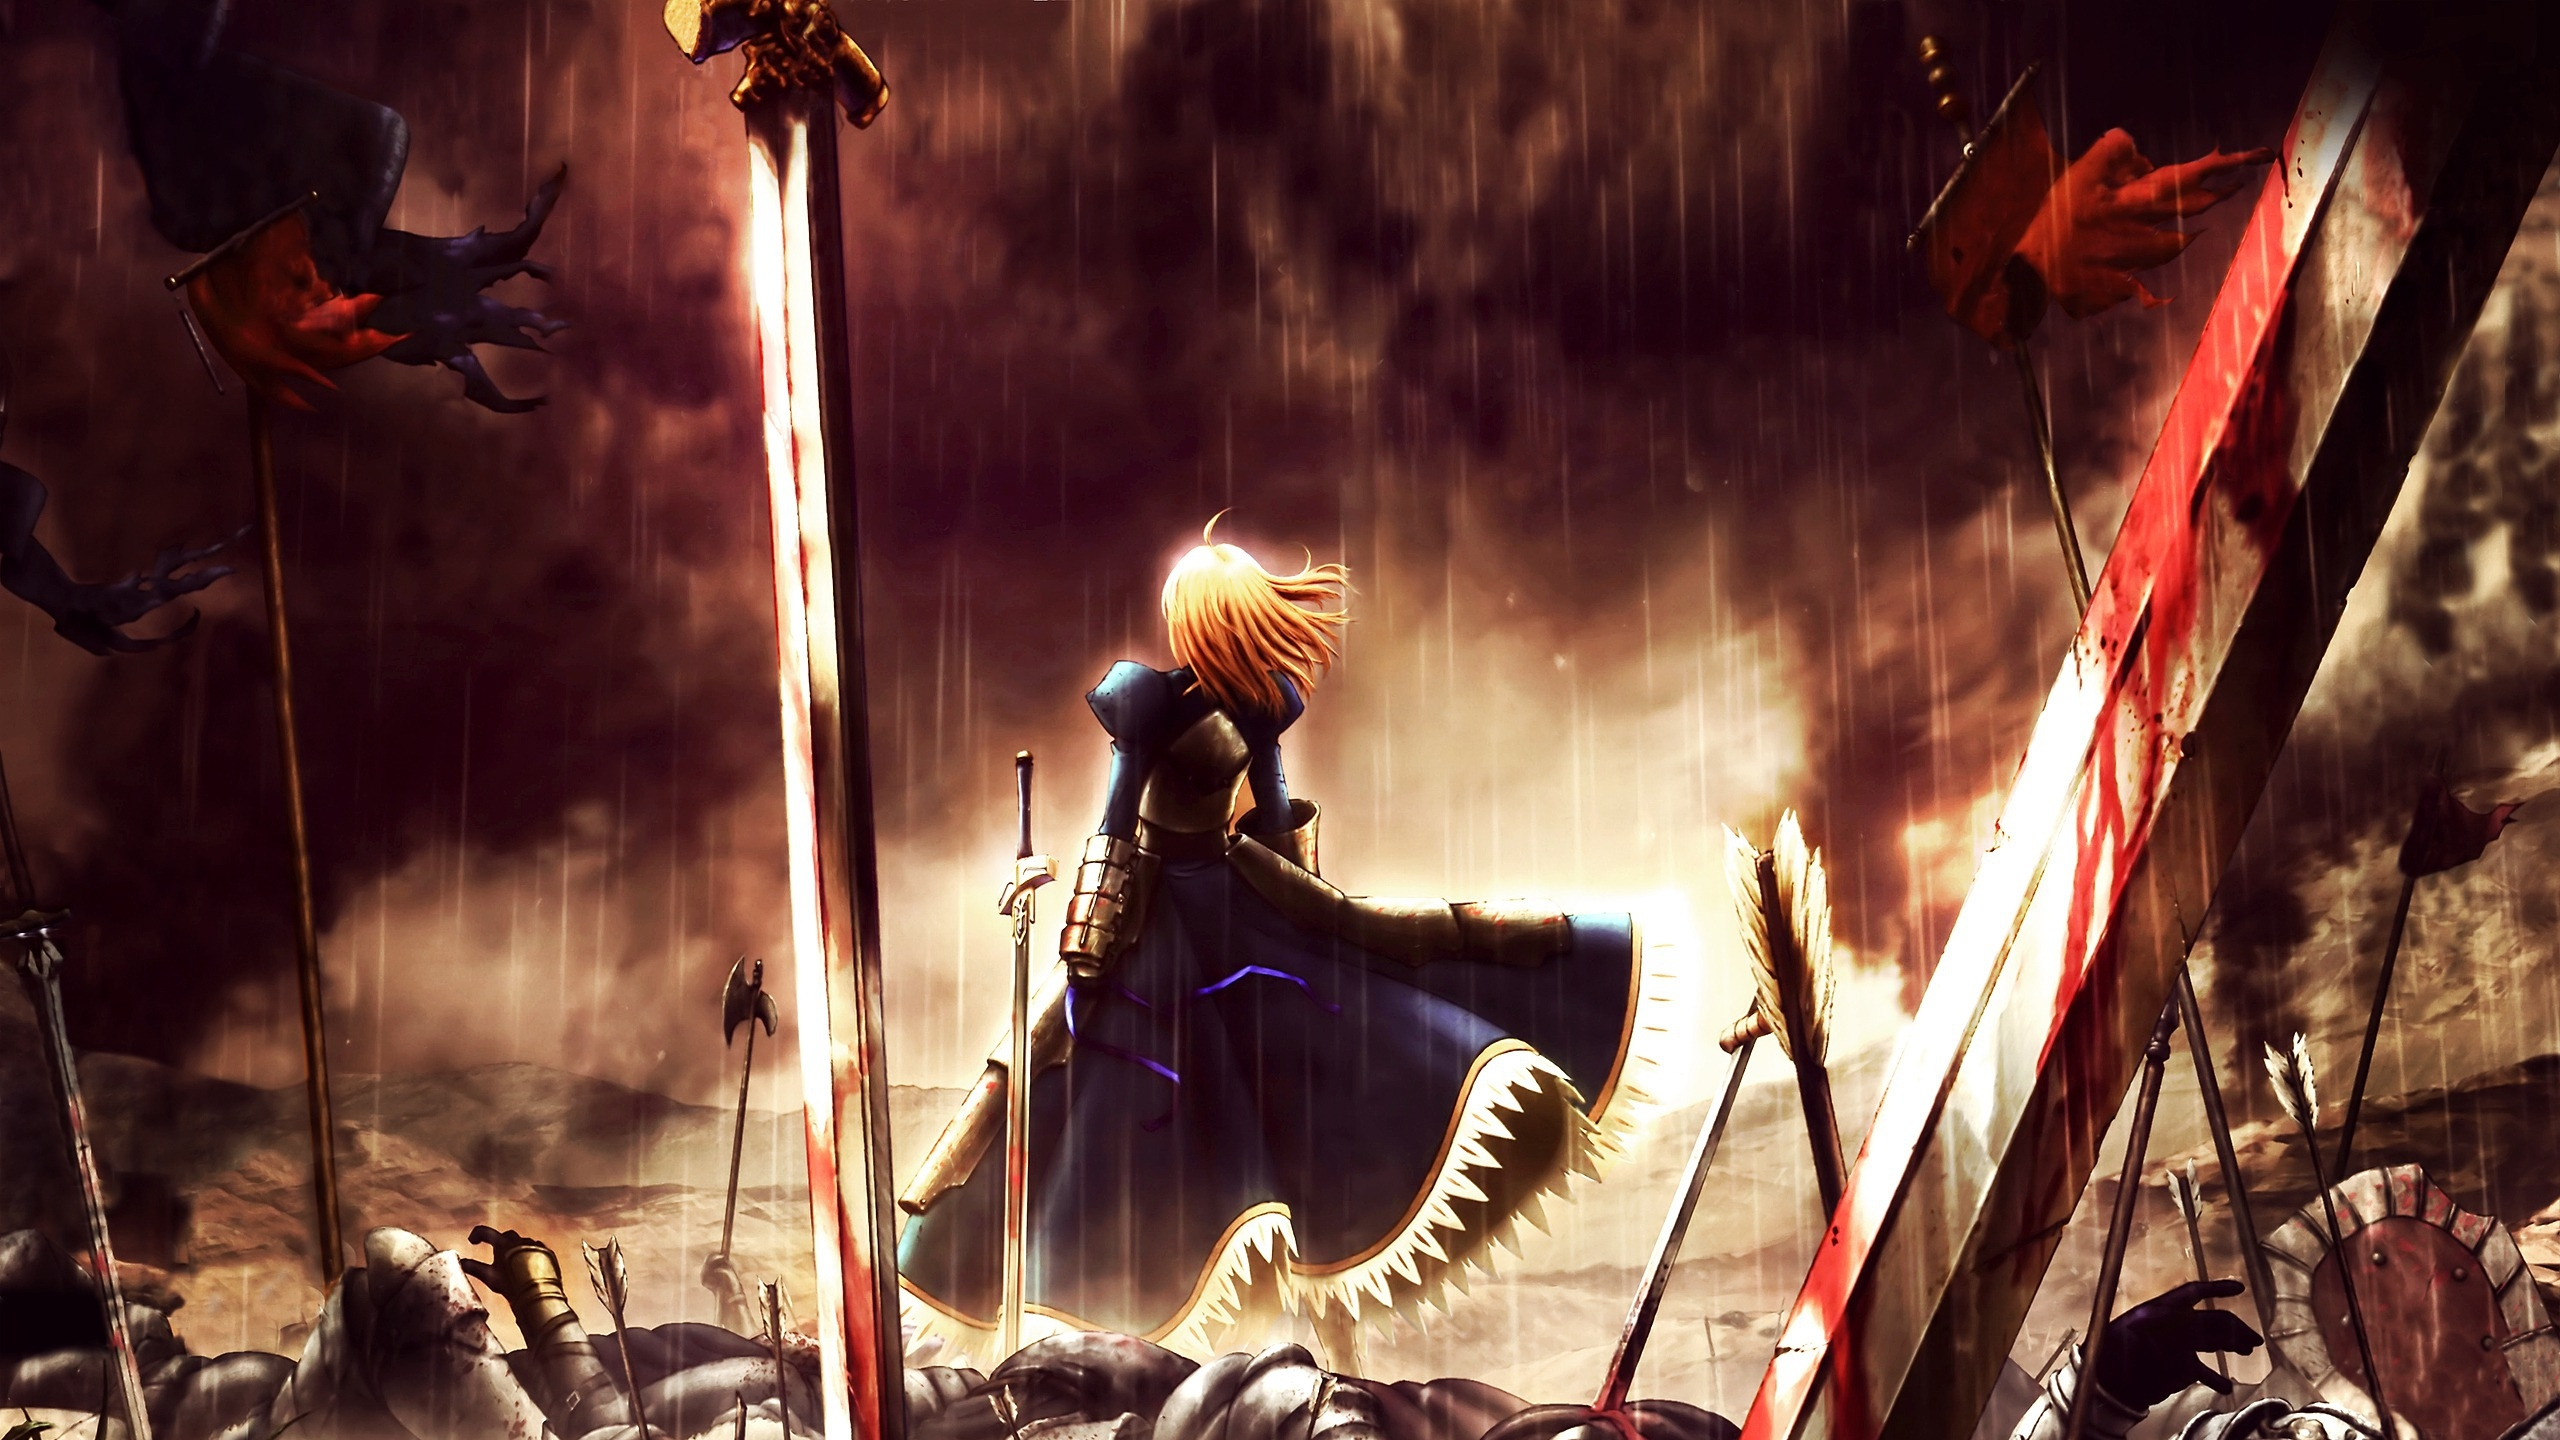 Fate Stay Night Hd Wallpaper Background Image 2560x1440 Id